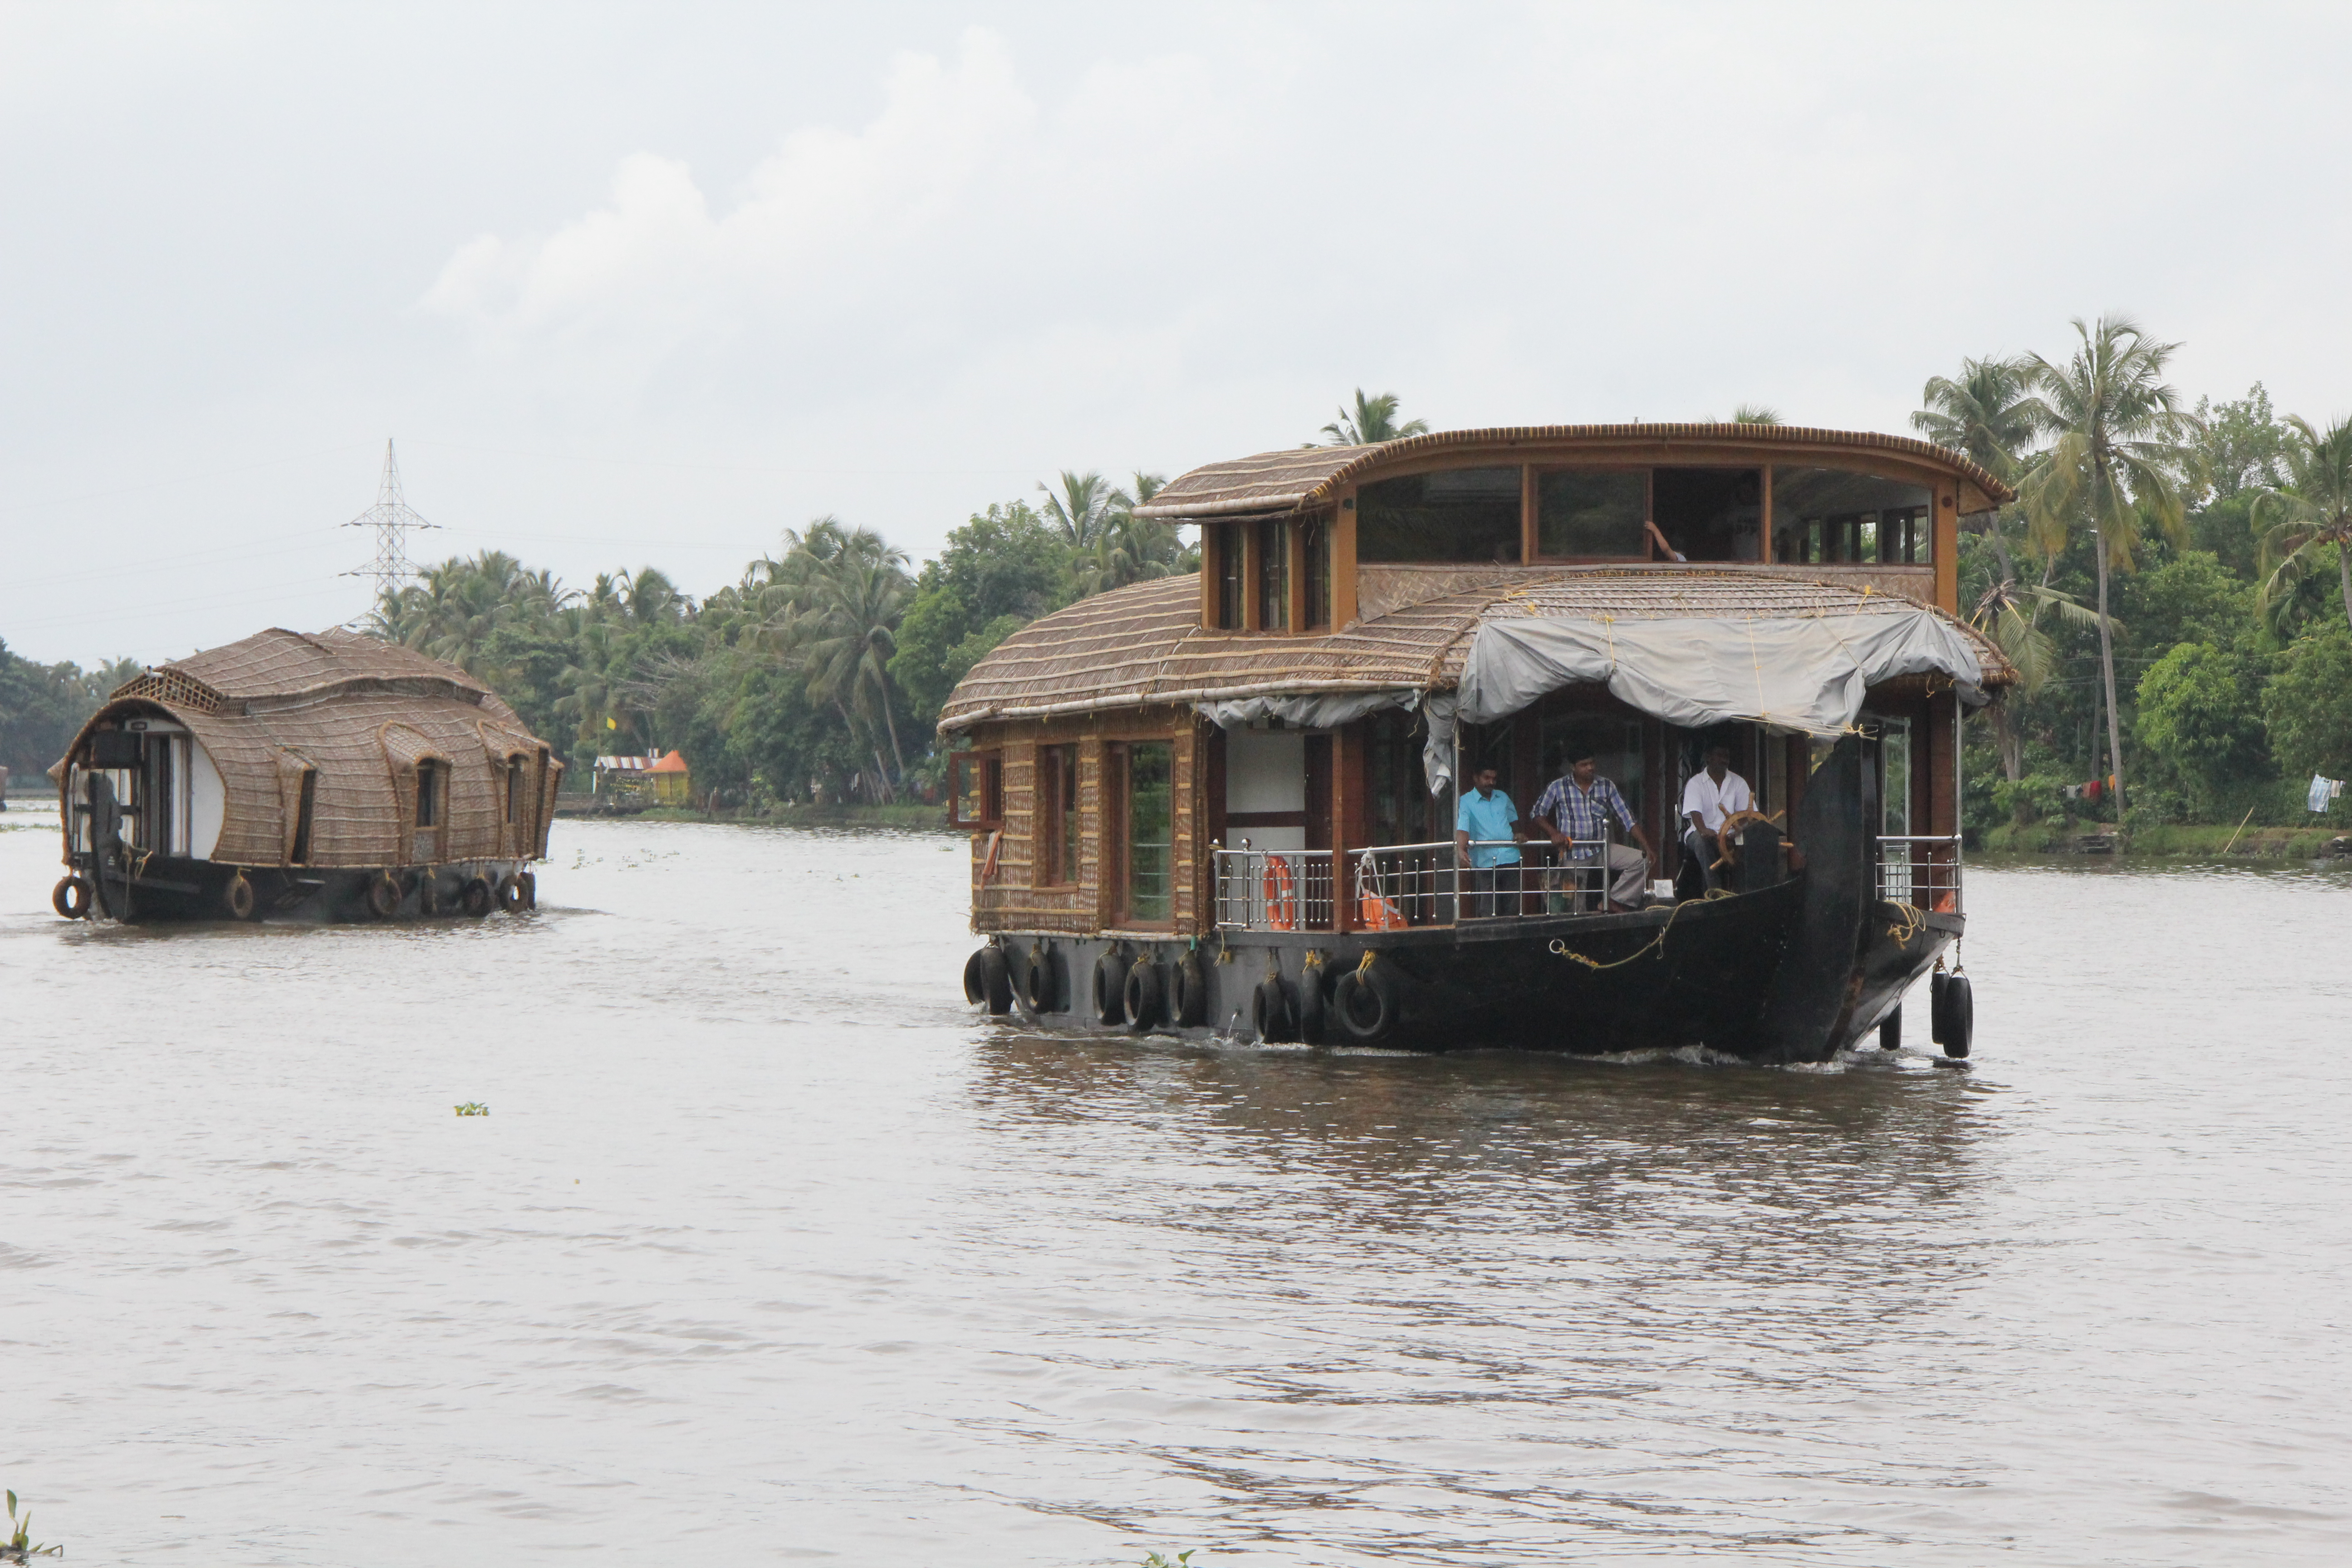 Alleppey India  city pictures gallery : Venice of India – Alleppey | A K J